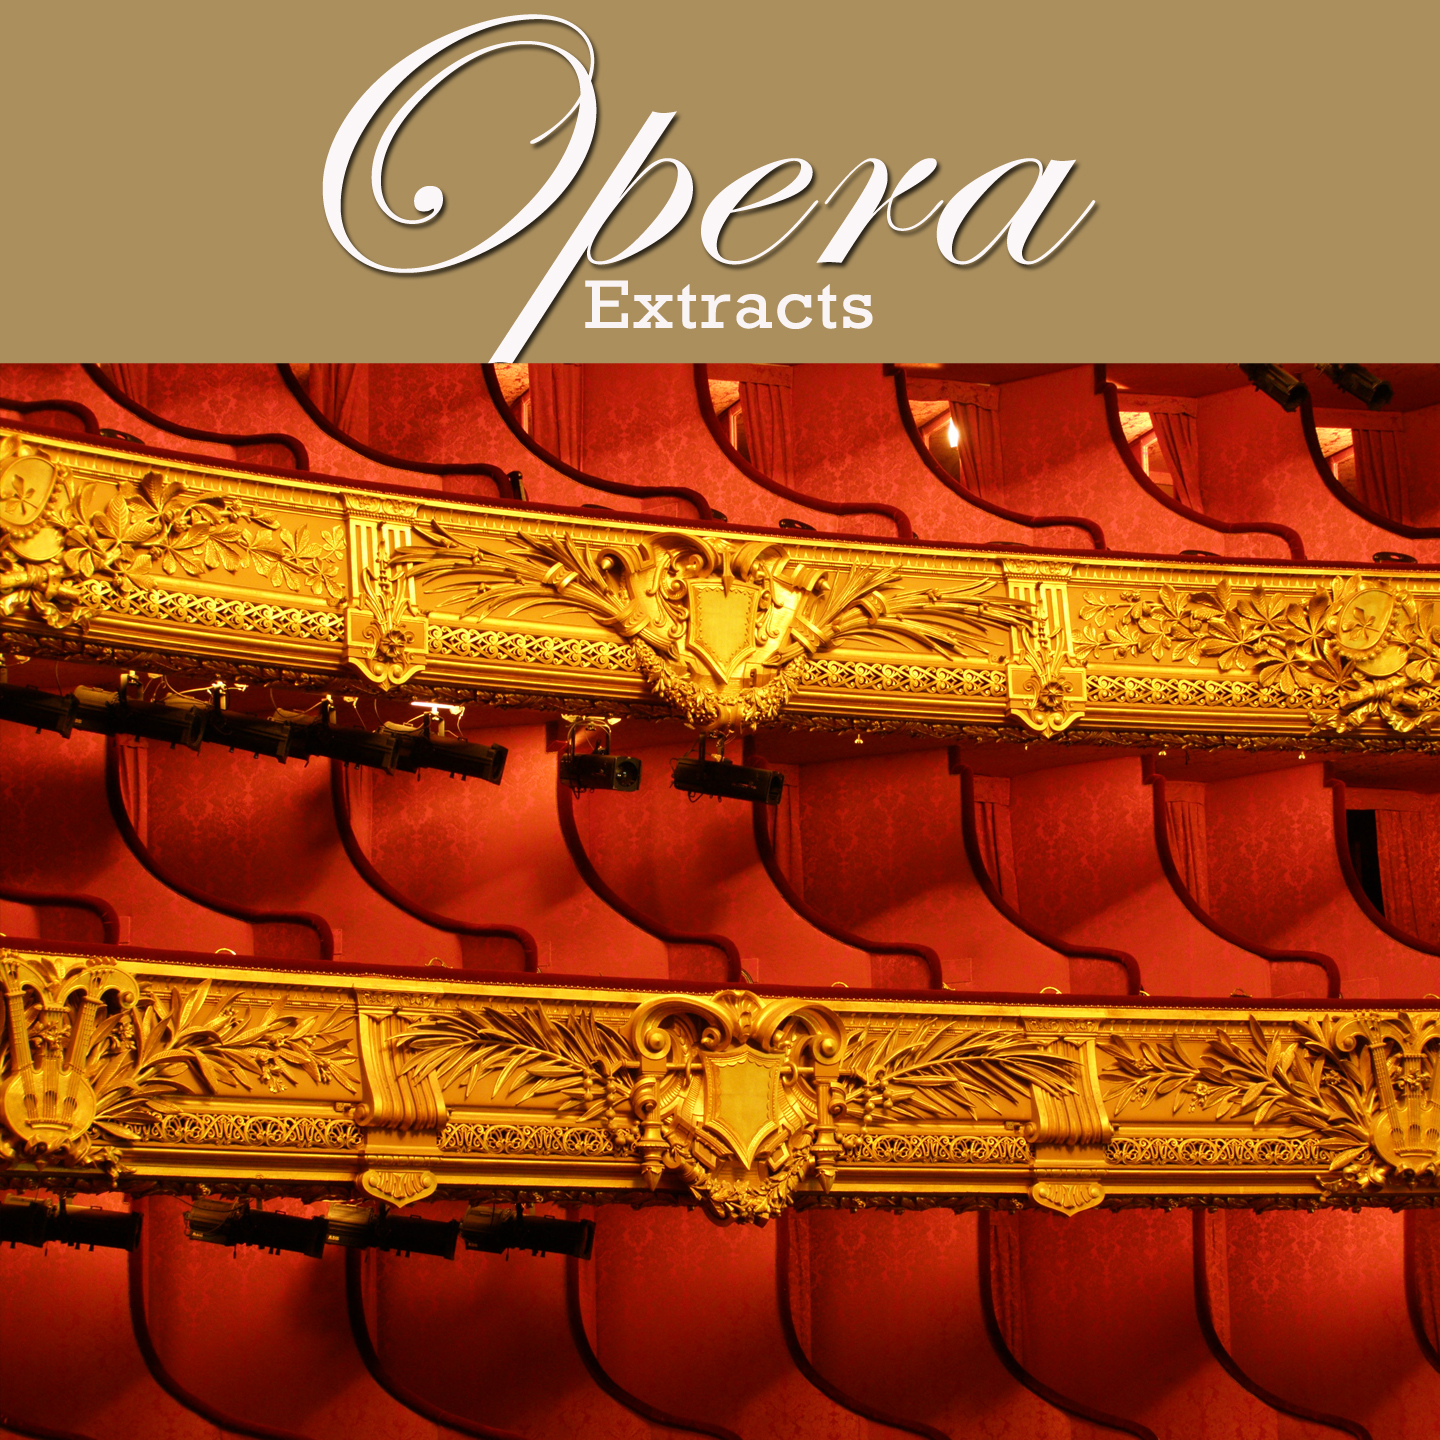 Opera Extracts: Floridia, Donizetti, Mercadante, Traetta, Cherubini, Piccinni, Rossini and Gluck